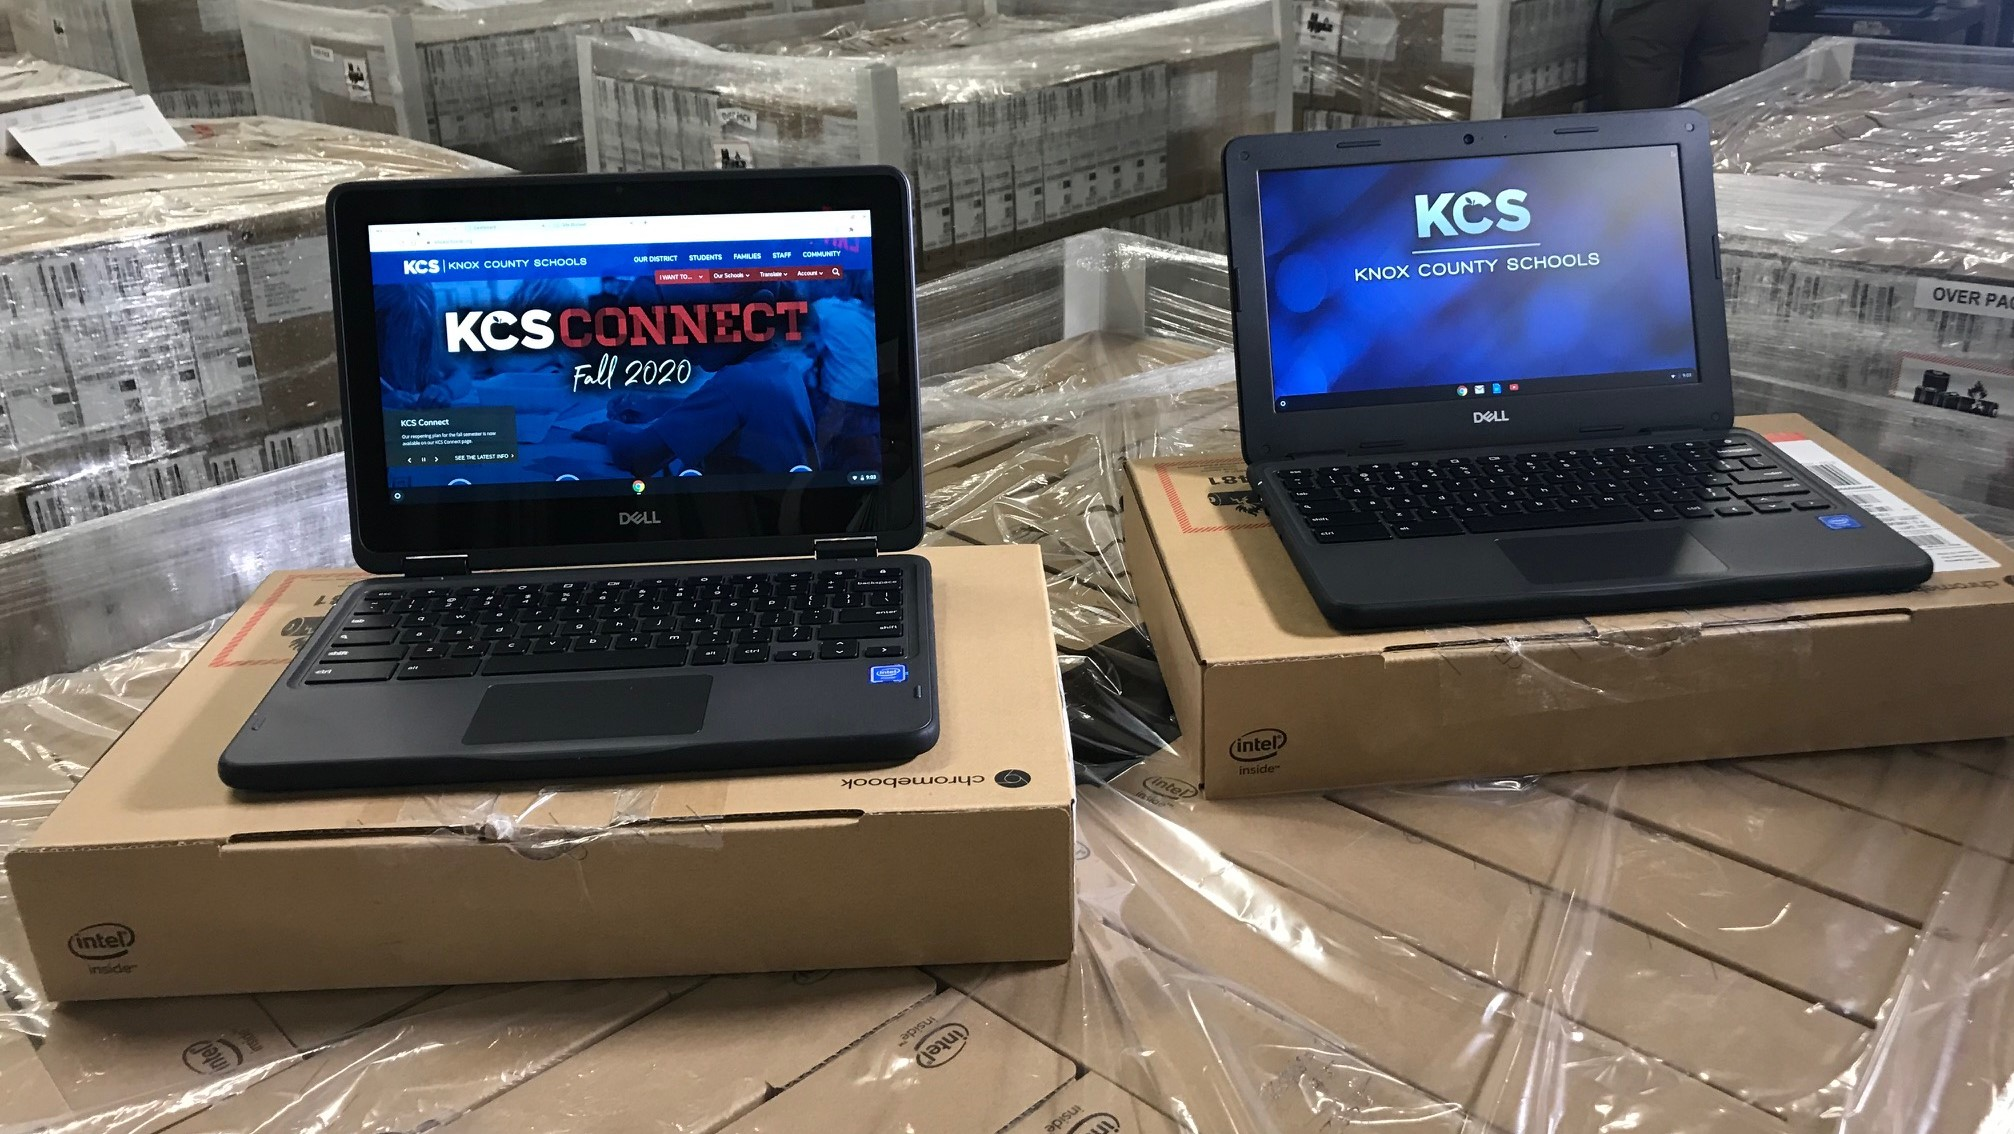 Under the district's new 1:1 initiative, K-2 students will receive touchscreen Chromebooks while students in Grades 3-12 will receive laptops.